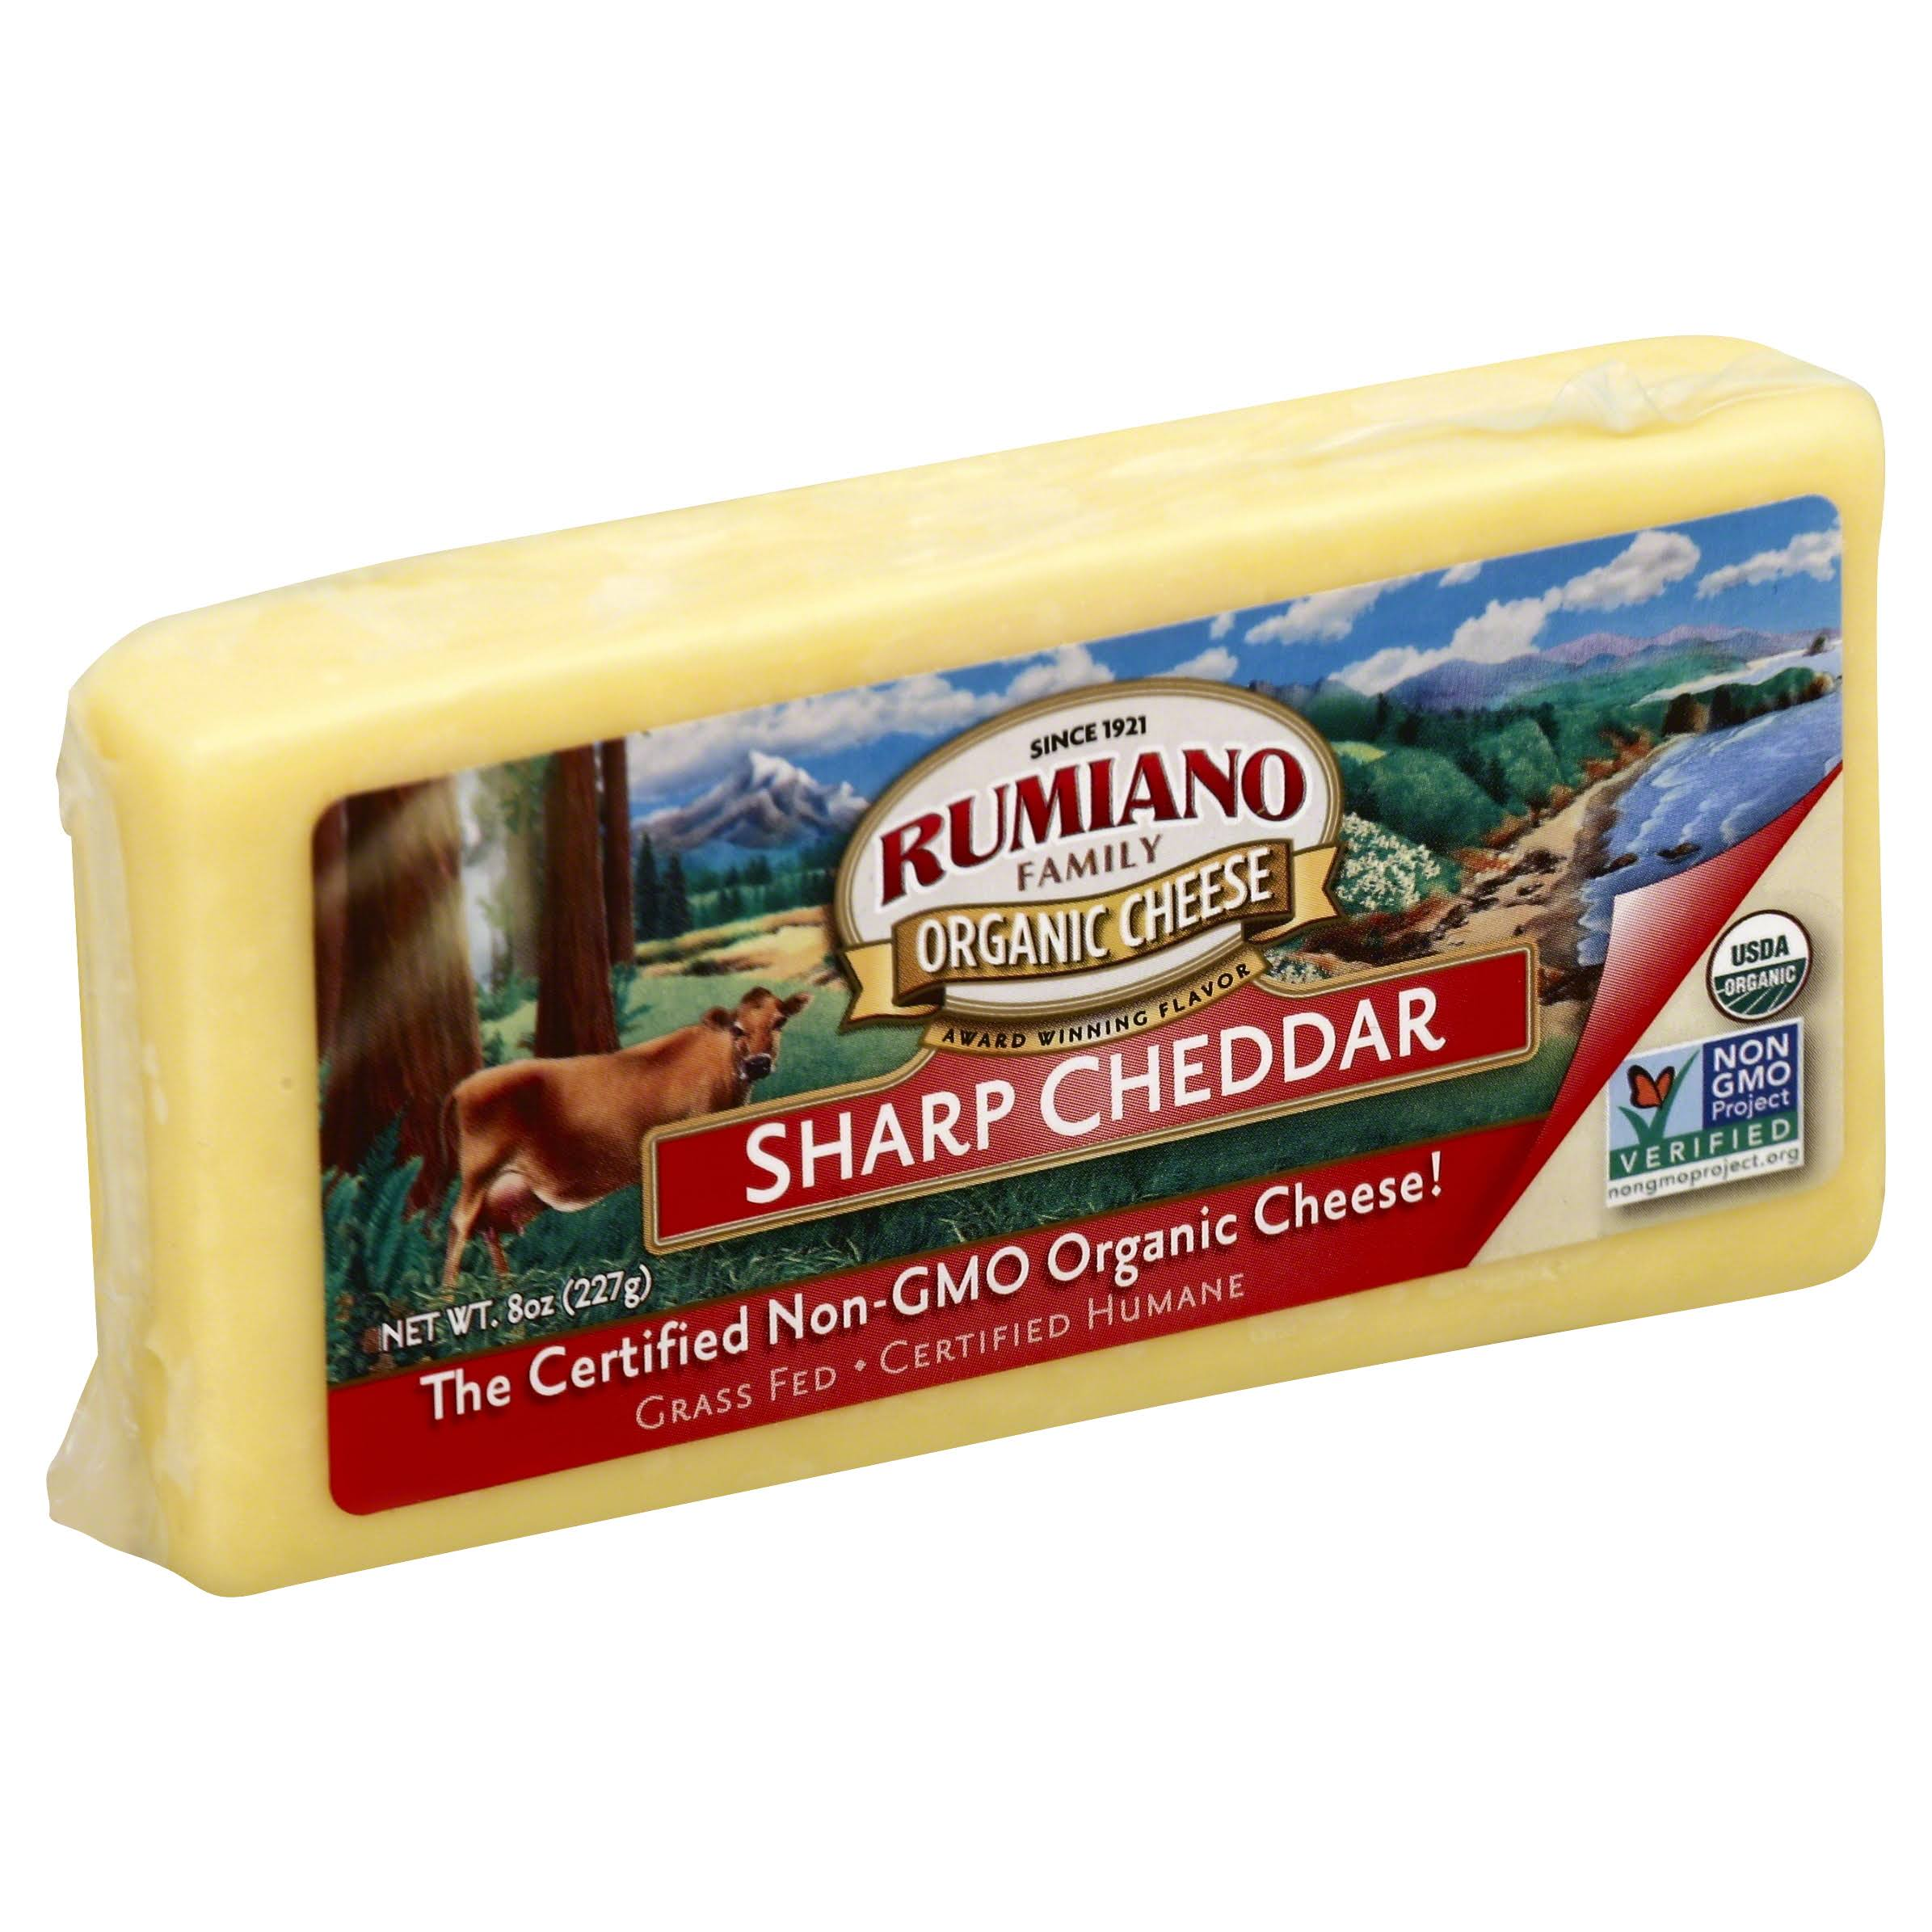 Rumiano Sharp Cheddar